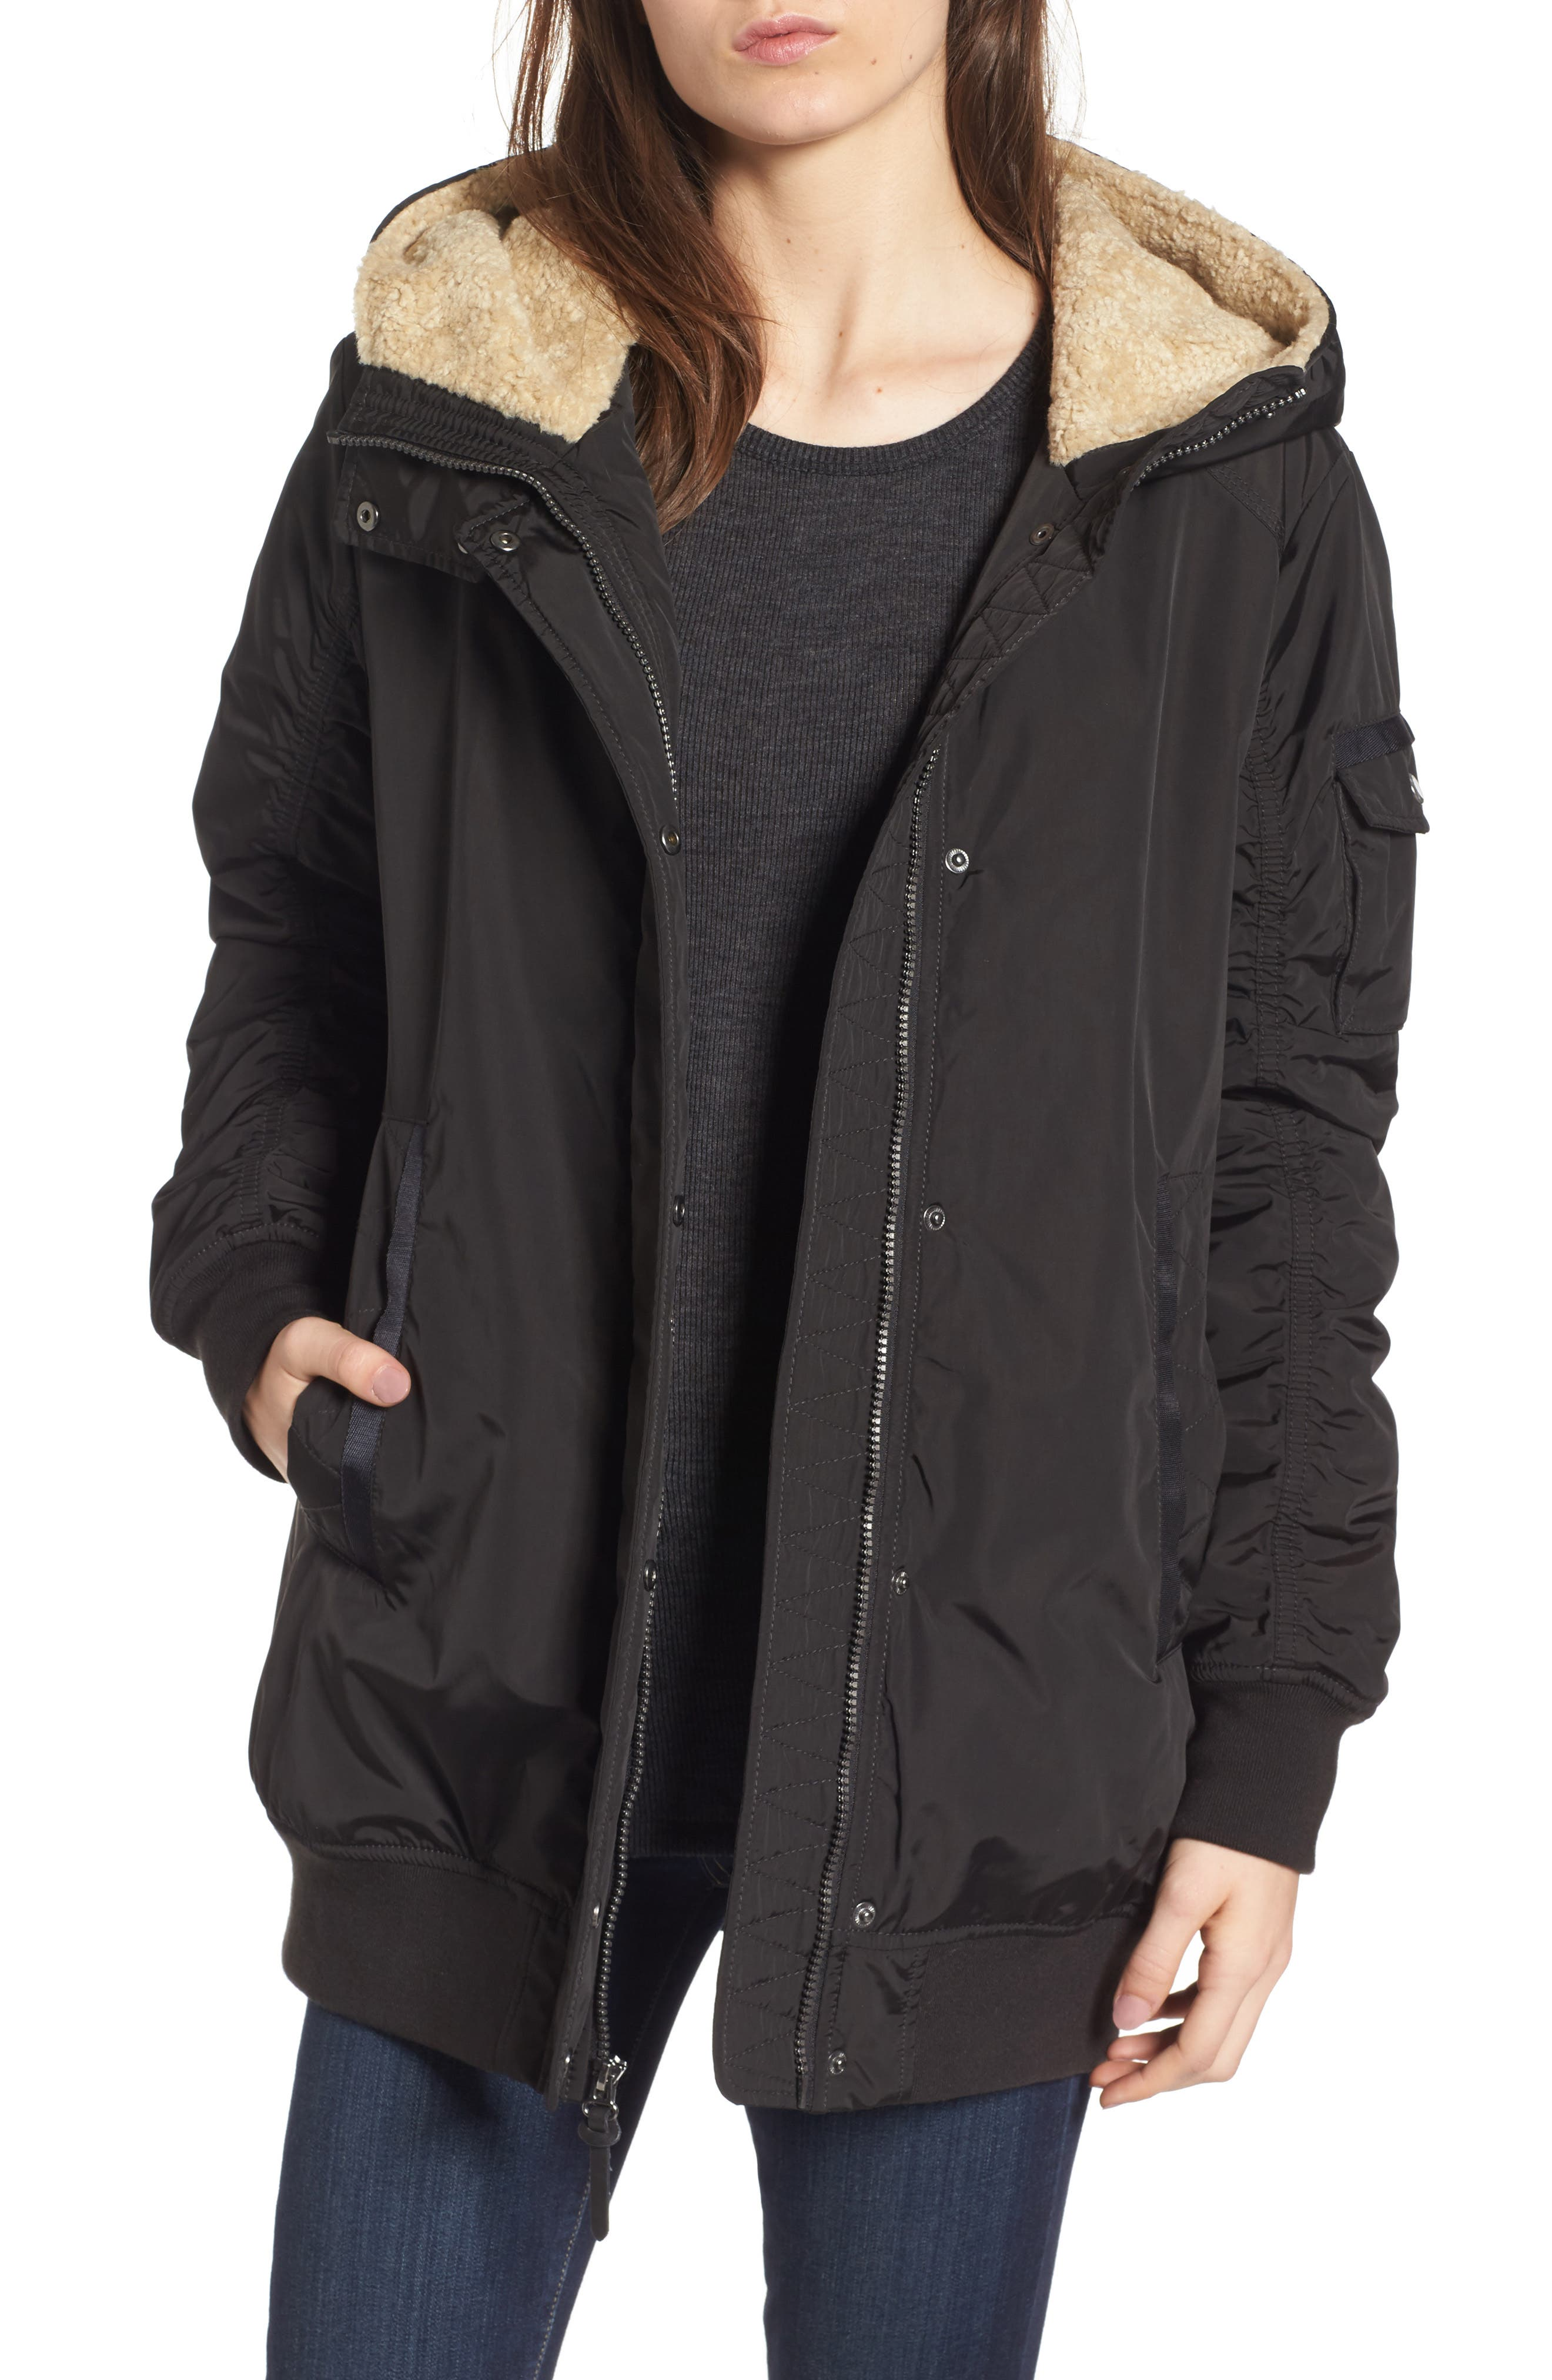 Main Image - Andrew Marc Nina Hooded Jacket with Faux Fur Trim